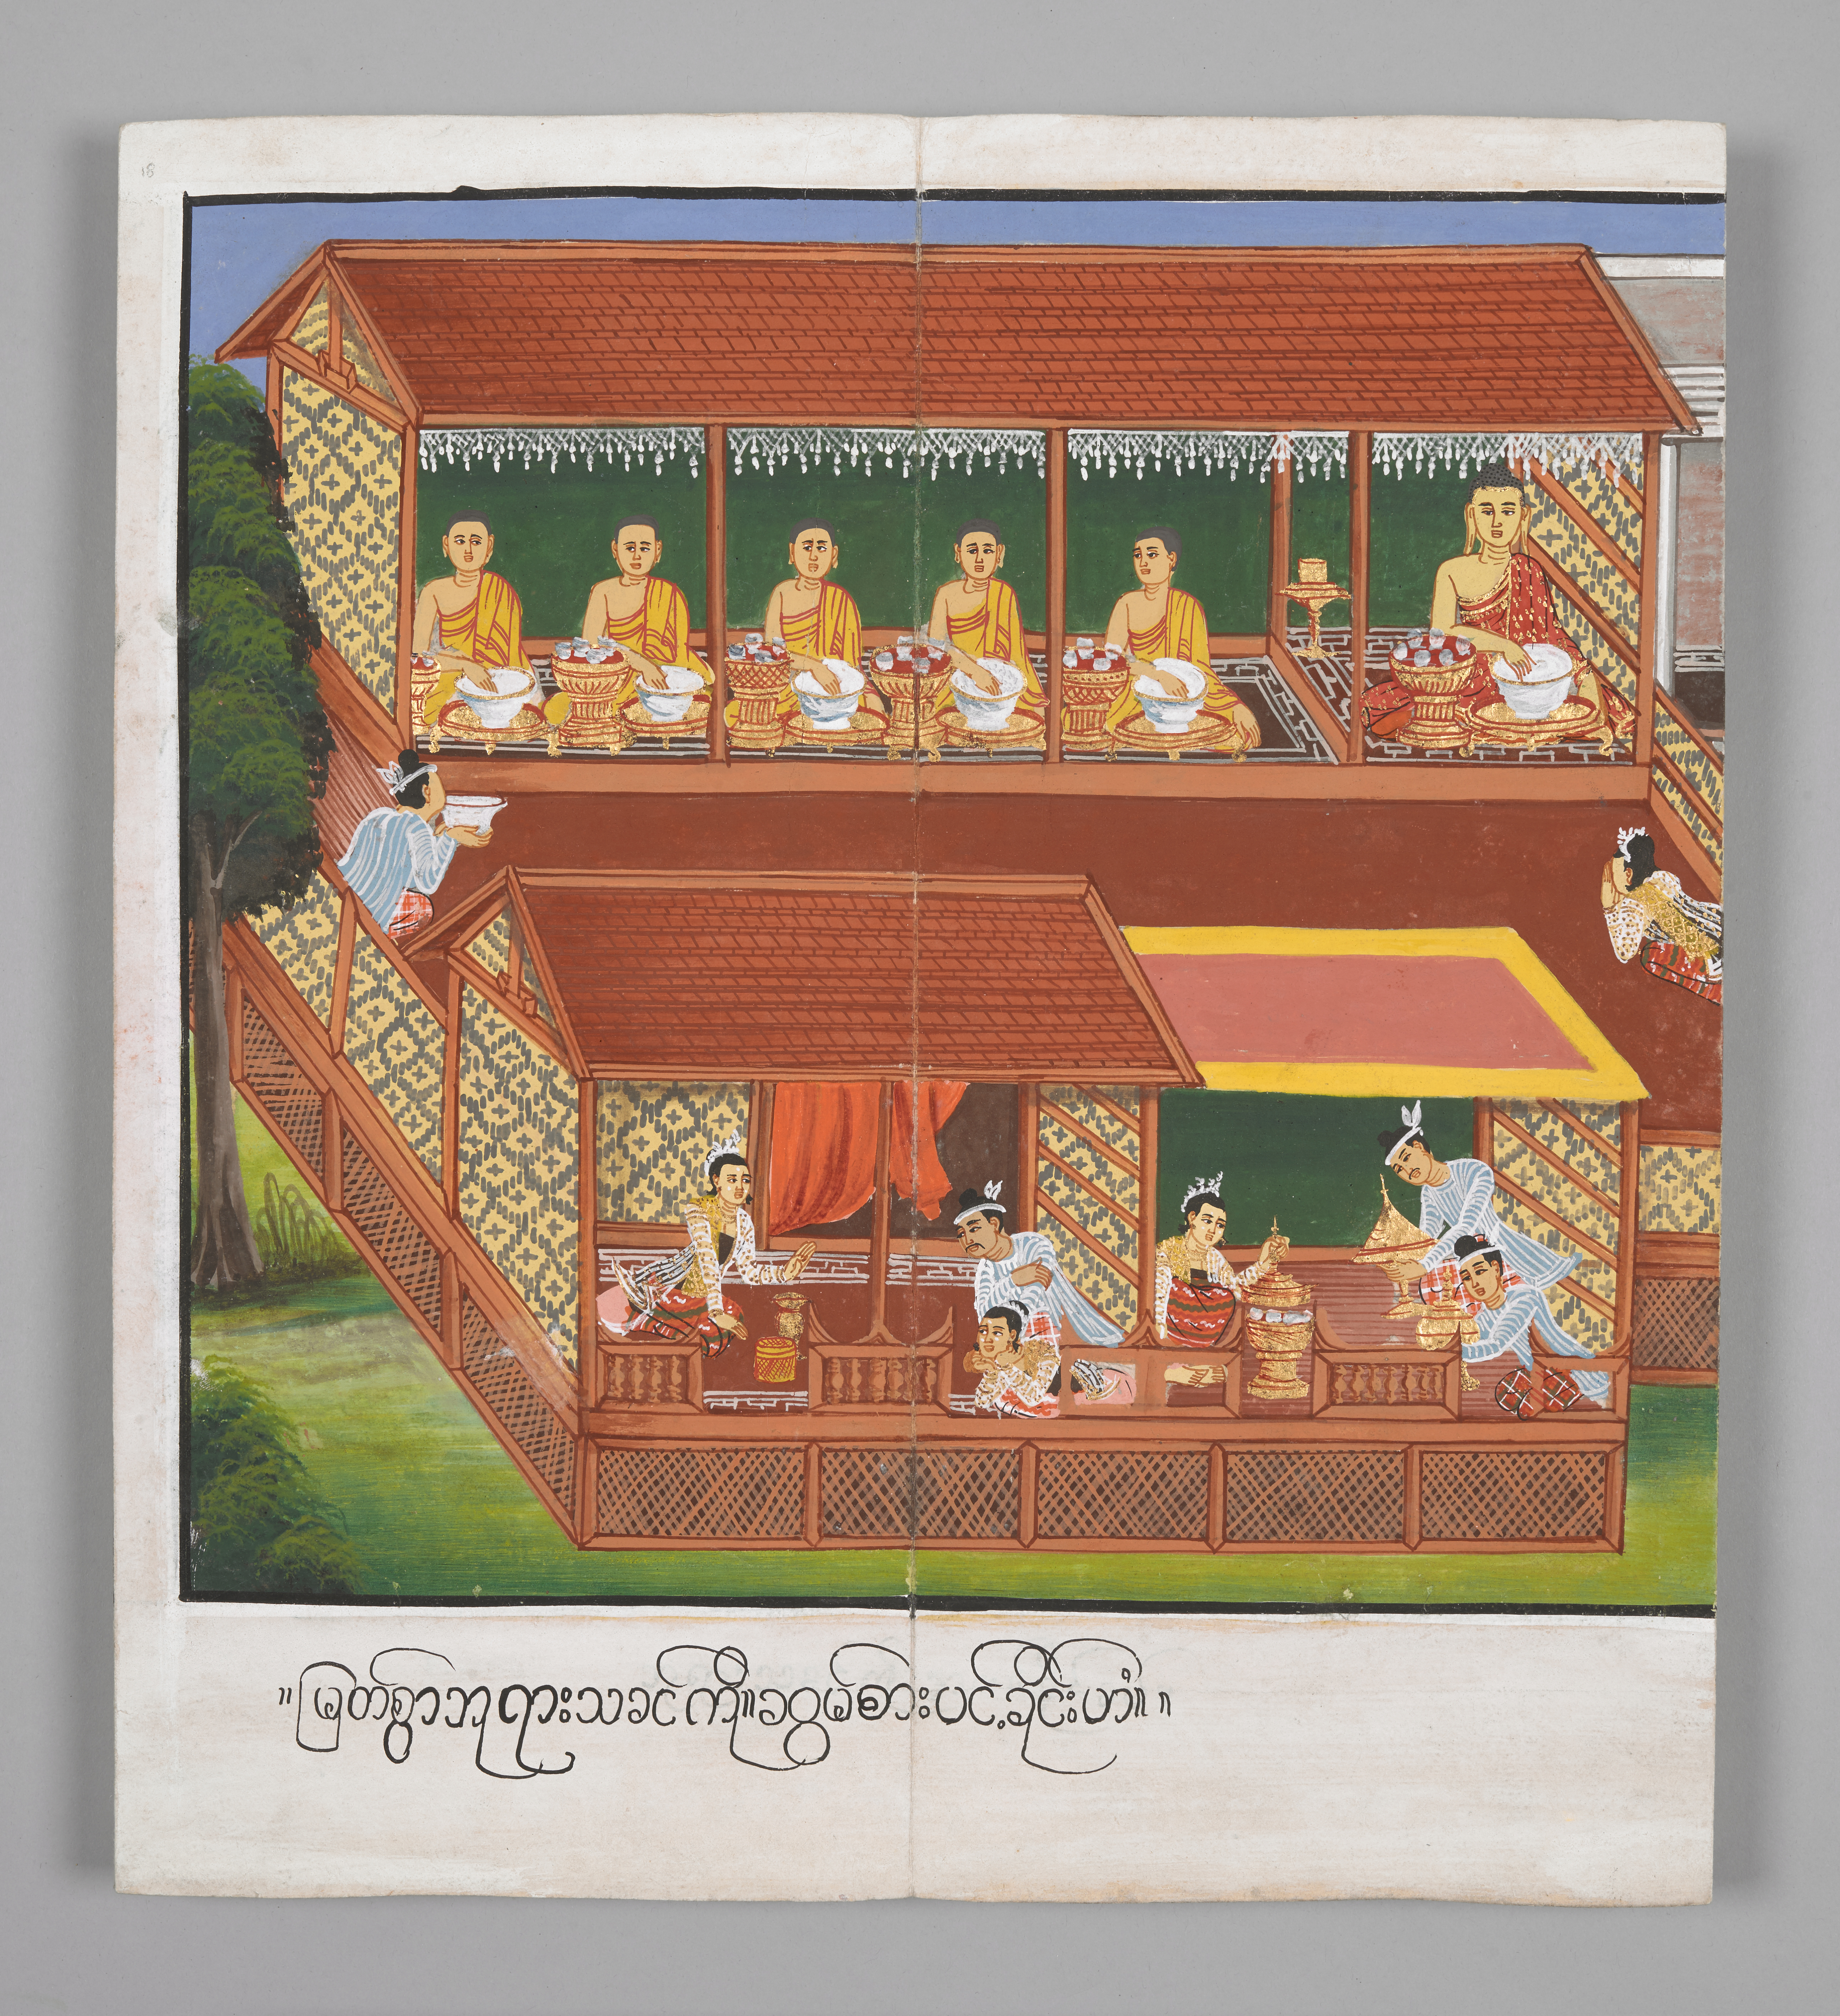 A Burmese manuscript painting depicting a scene from the life of Buddha, from the 19th century